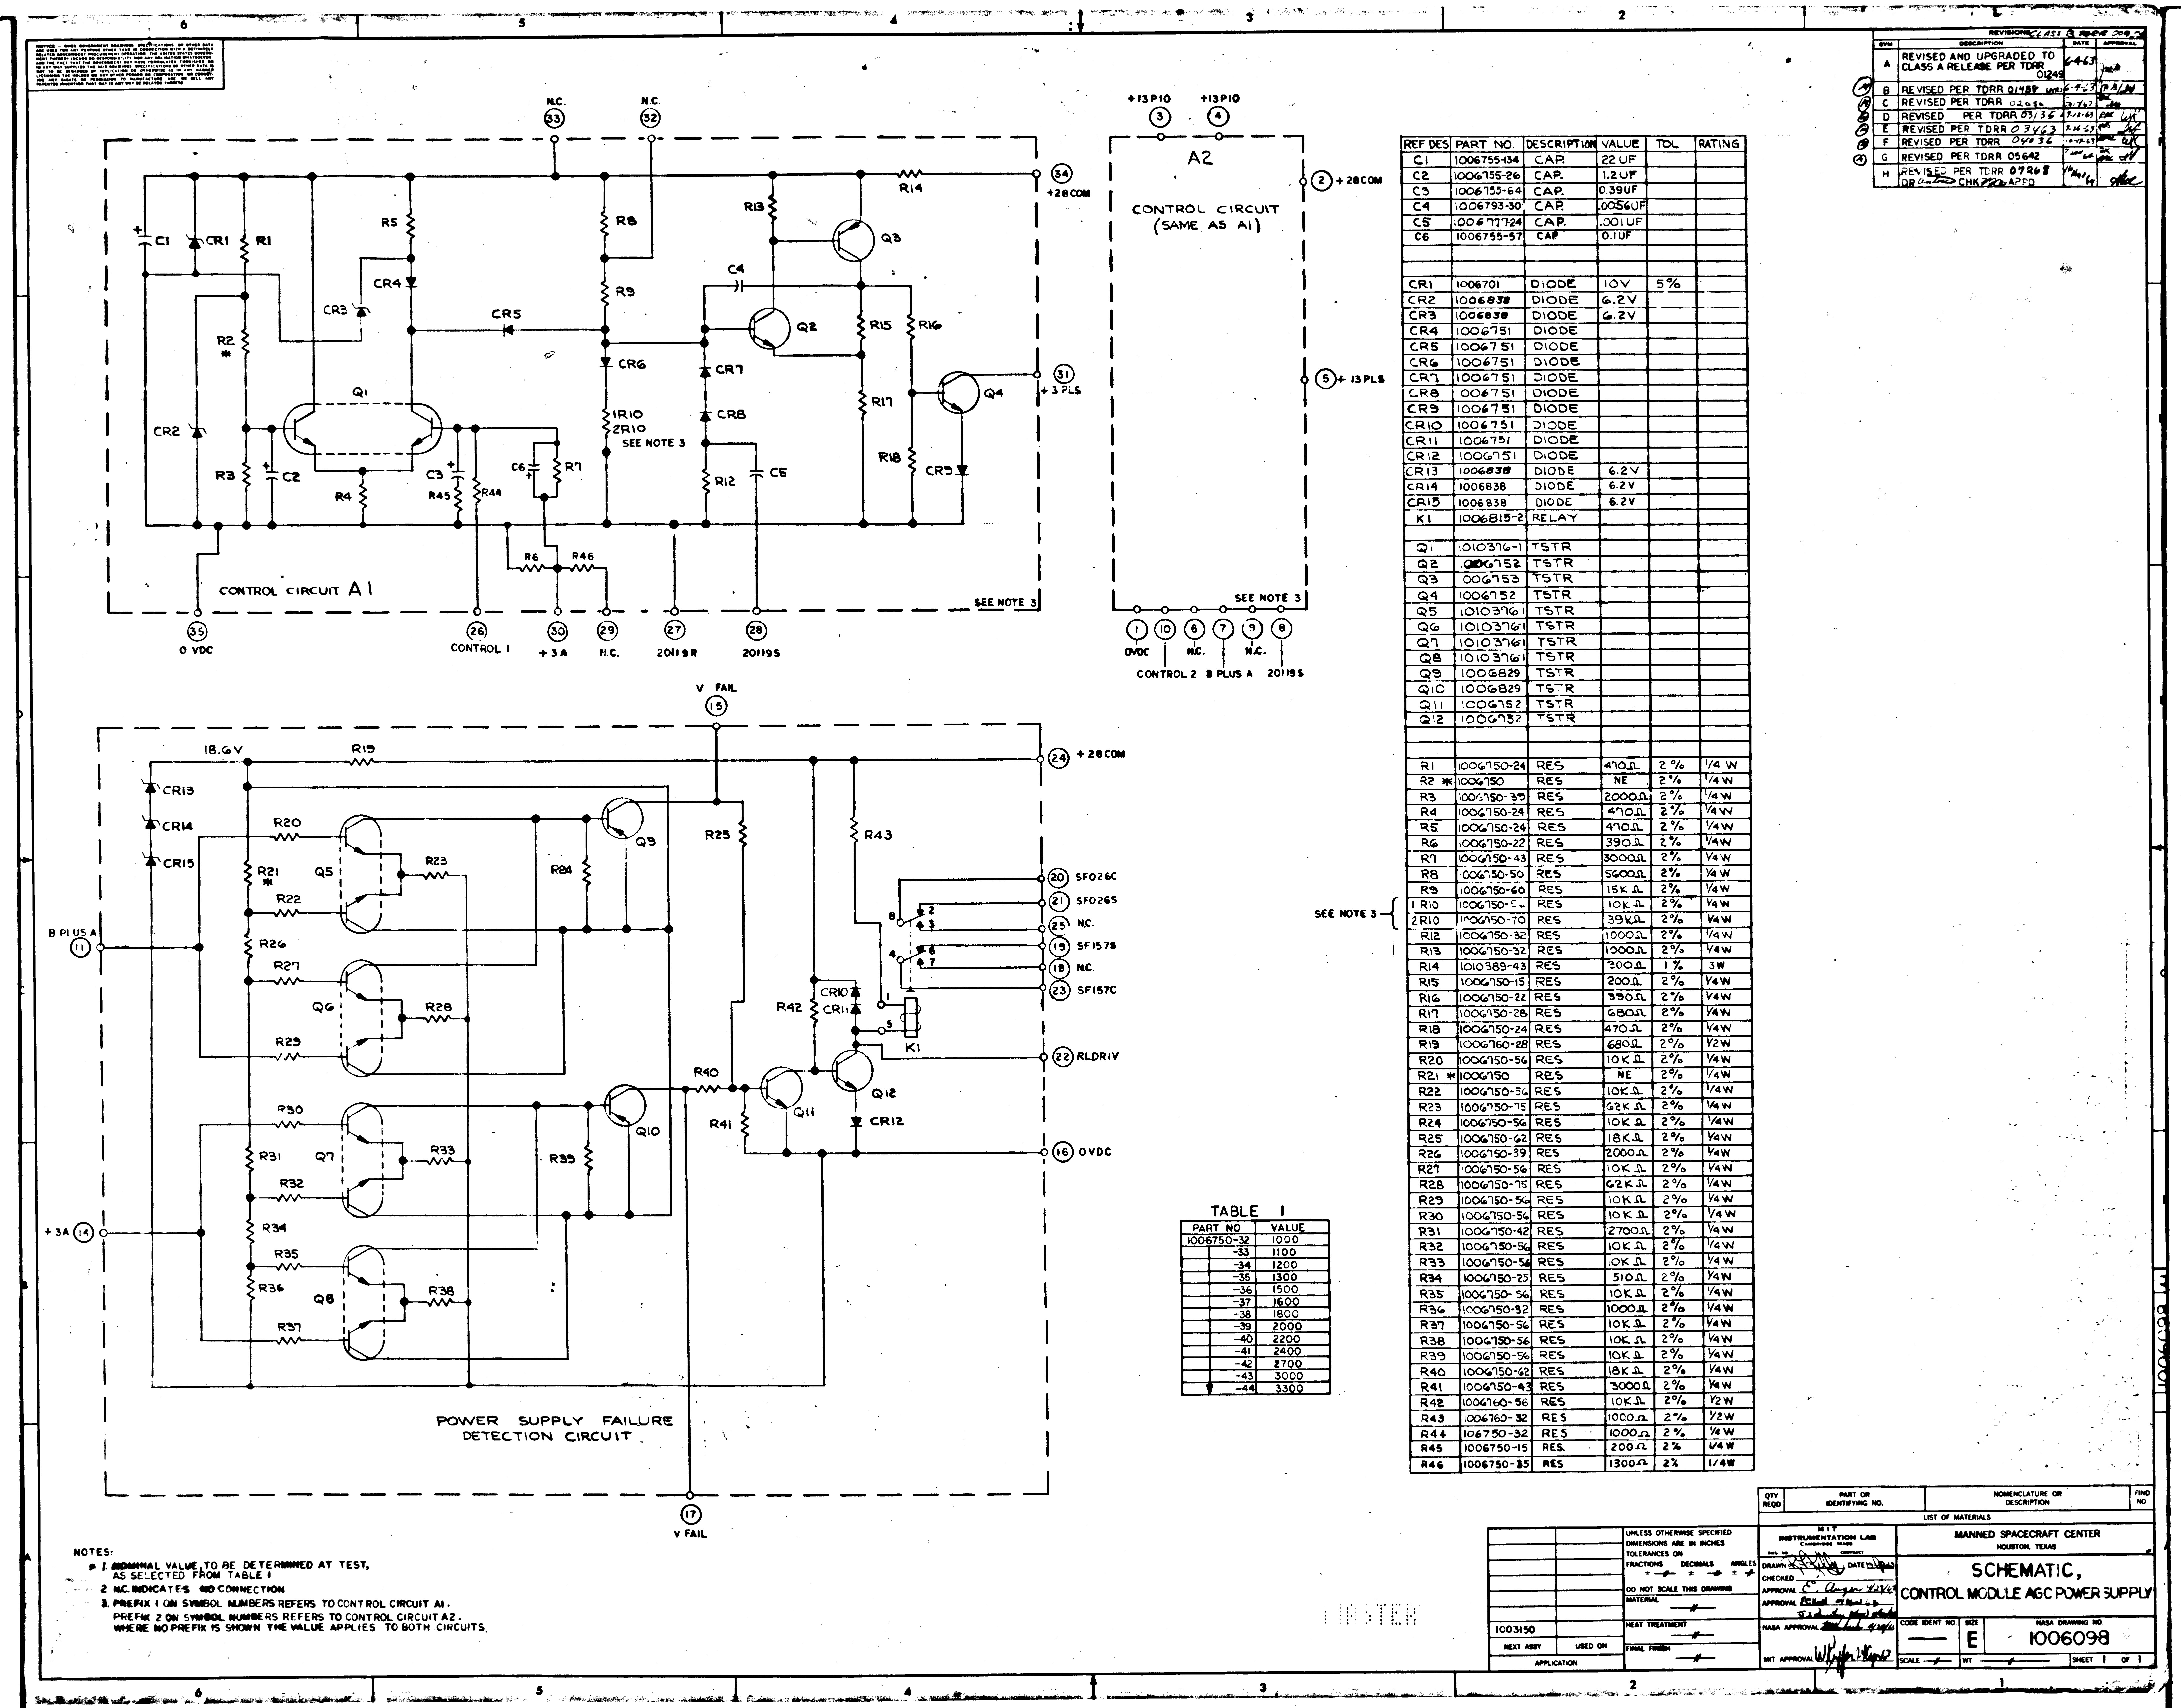 Virtual Agc Electrical Mechanical Page J 380 Circuit Board Wiring Diagram We Dont Have A Scan Of Revision This Drawing Scanned Images Are H Instead